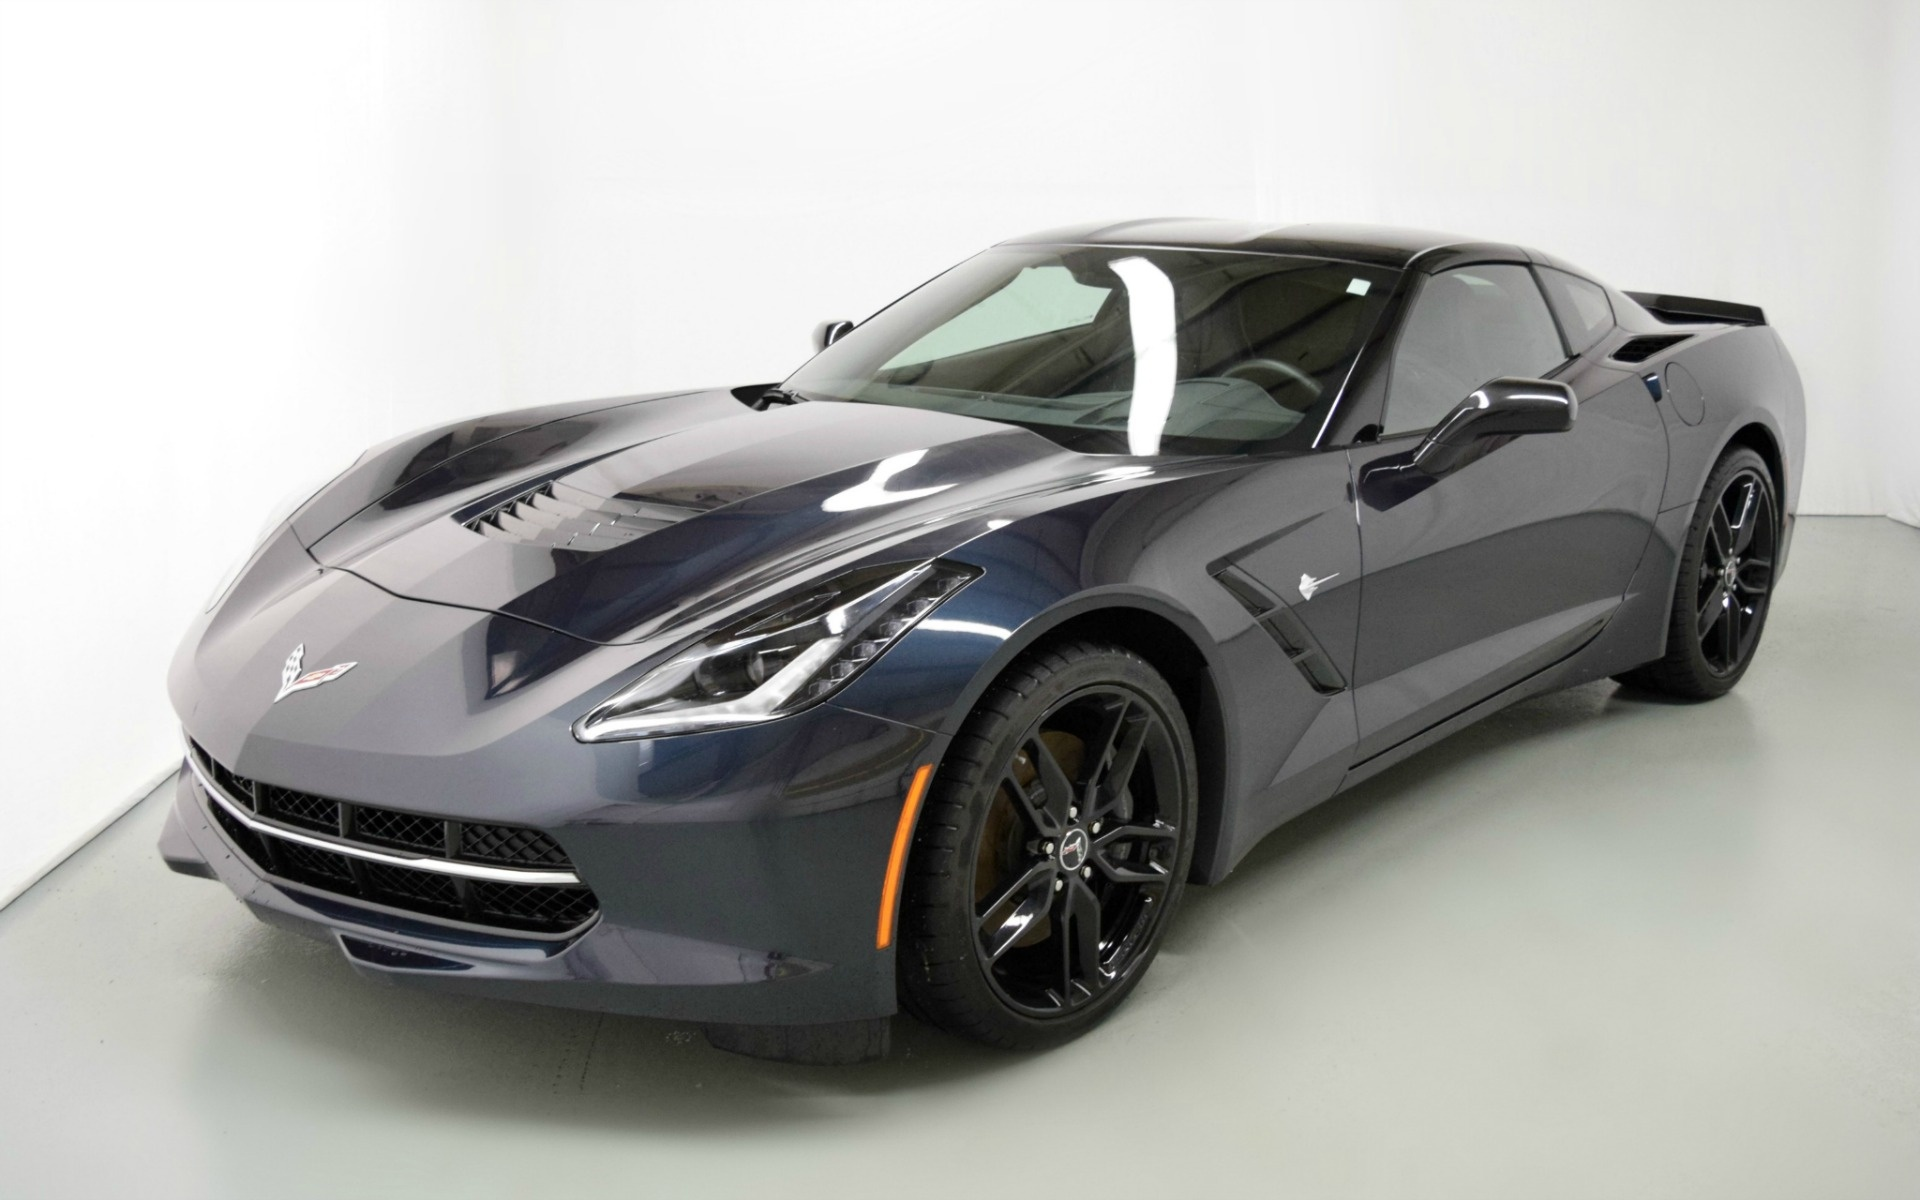 2014 Chevrolet Corvette Stingray Z51 >> 2014 Chevrolet Corvette Stingray Z51 For Sale in Norwell